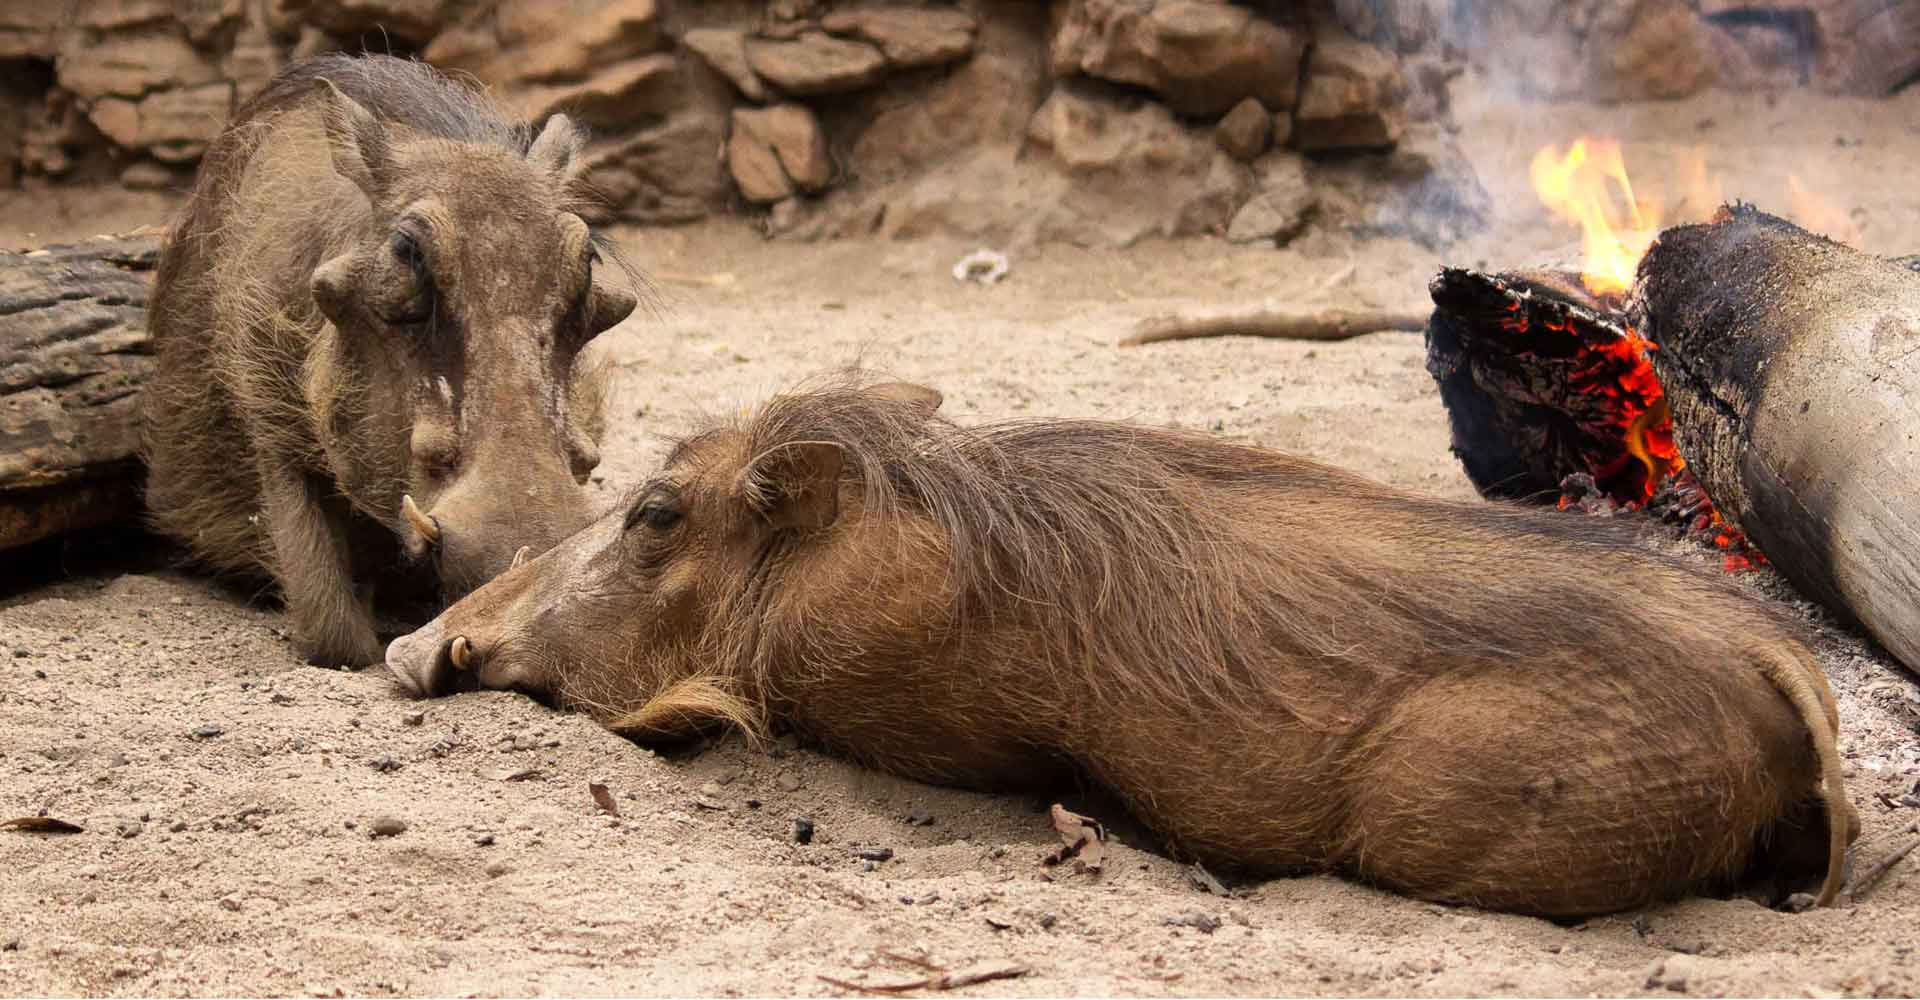 warthogs in Mlilwane by mabeco tours on a holiday package from Maputo